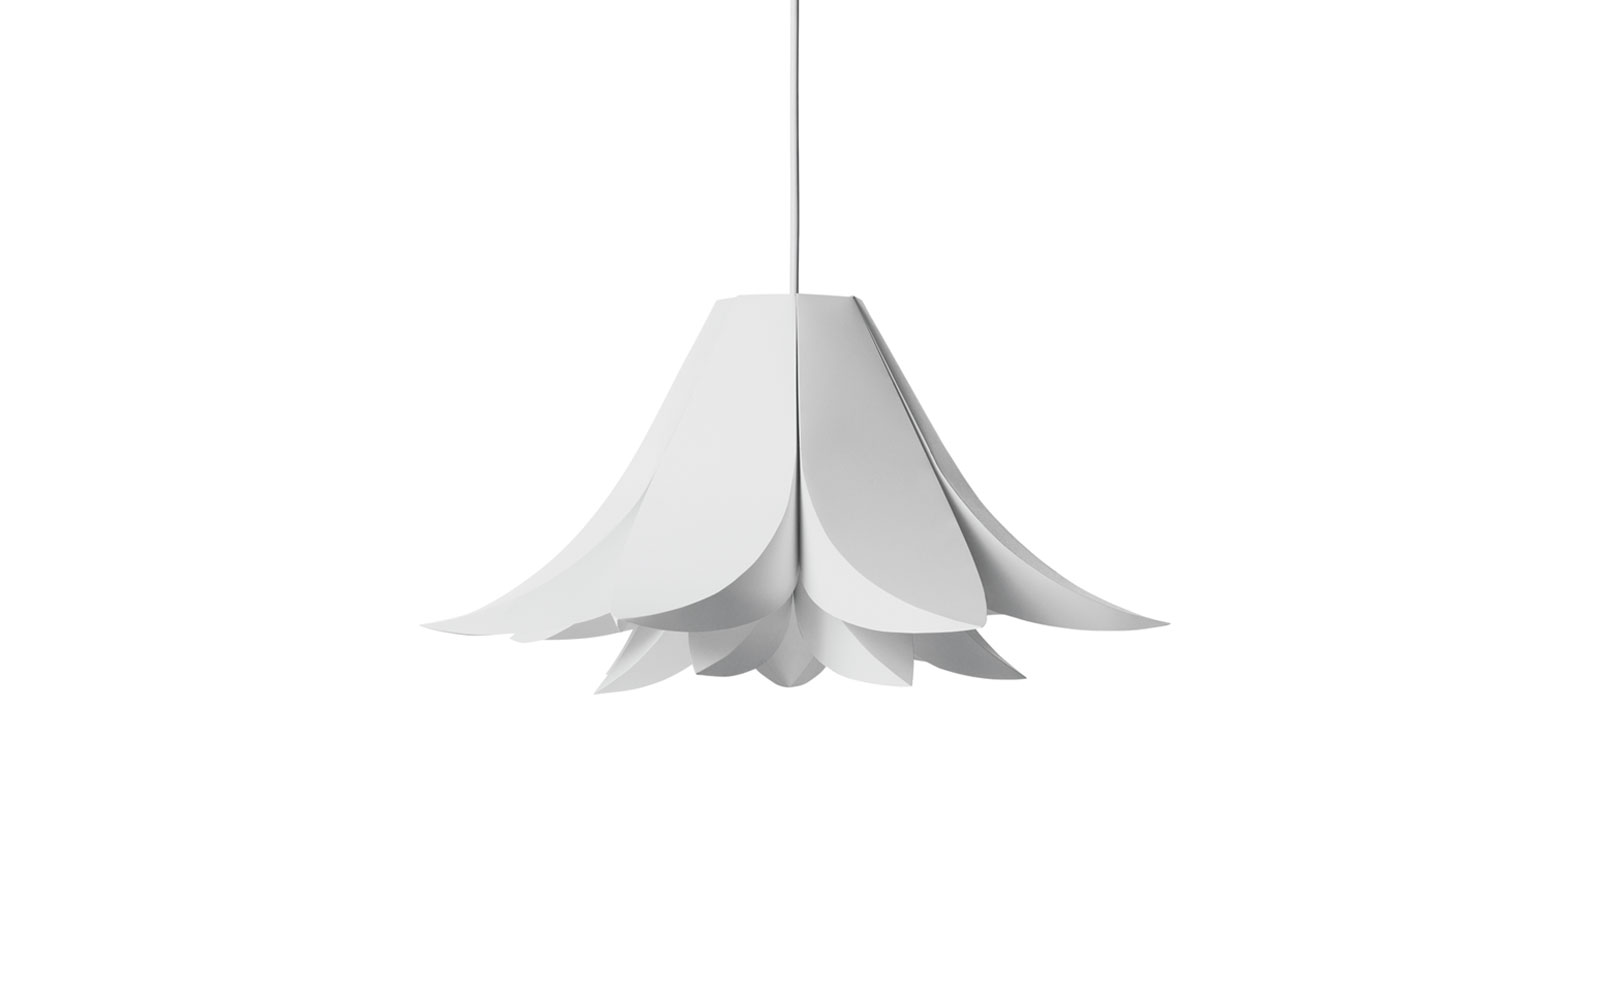 Norm 06 Lamp Small Frontview White Background